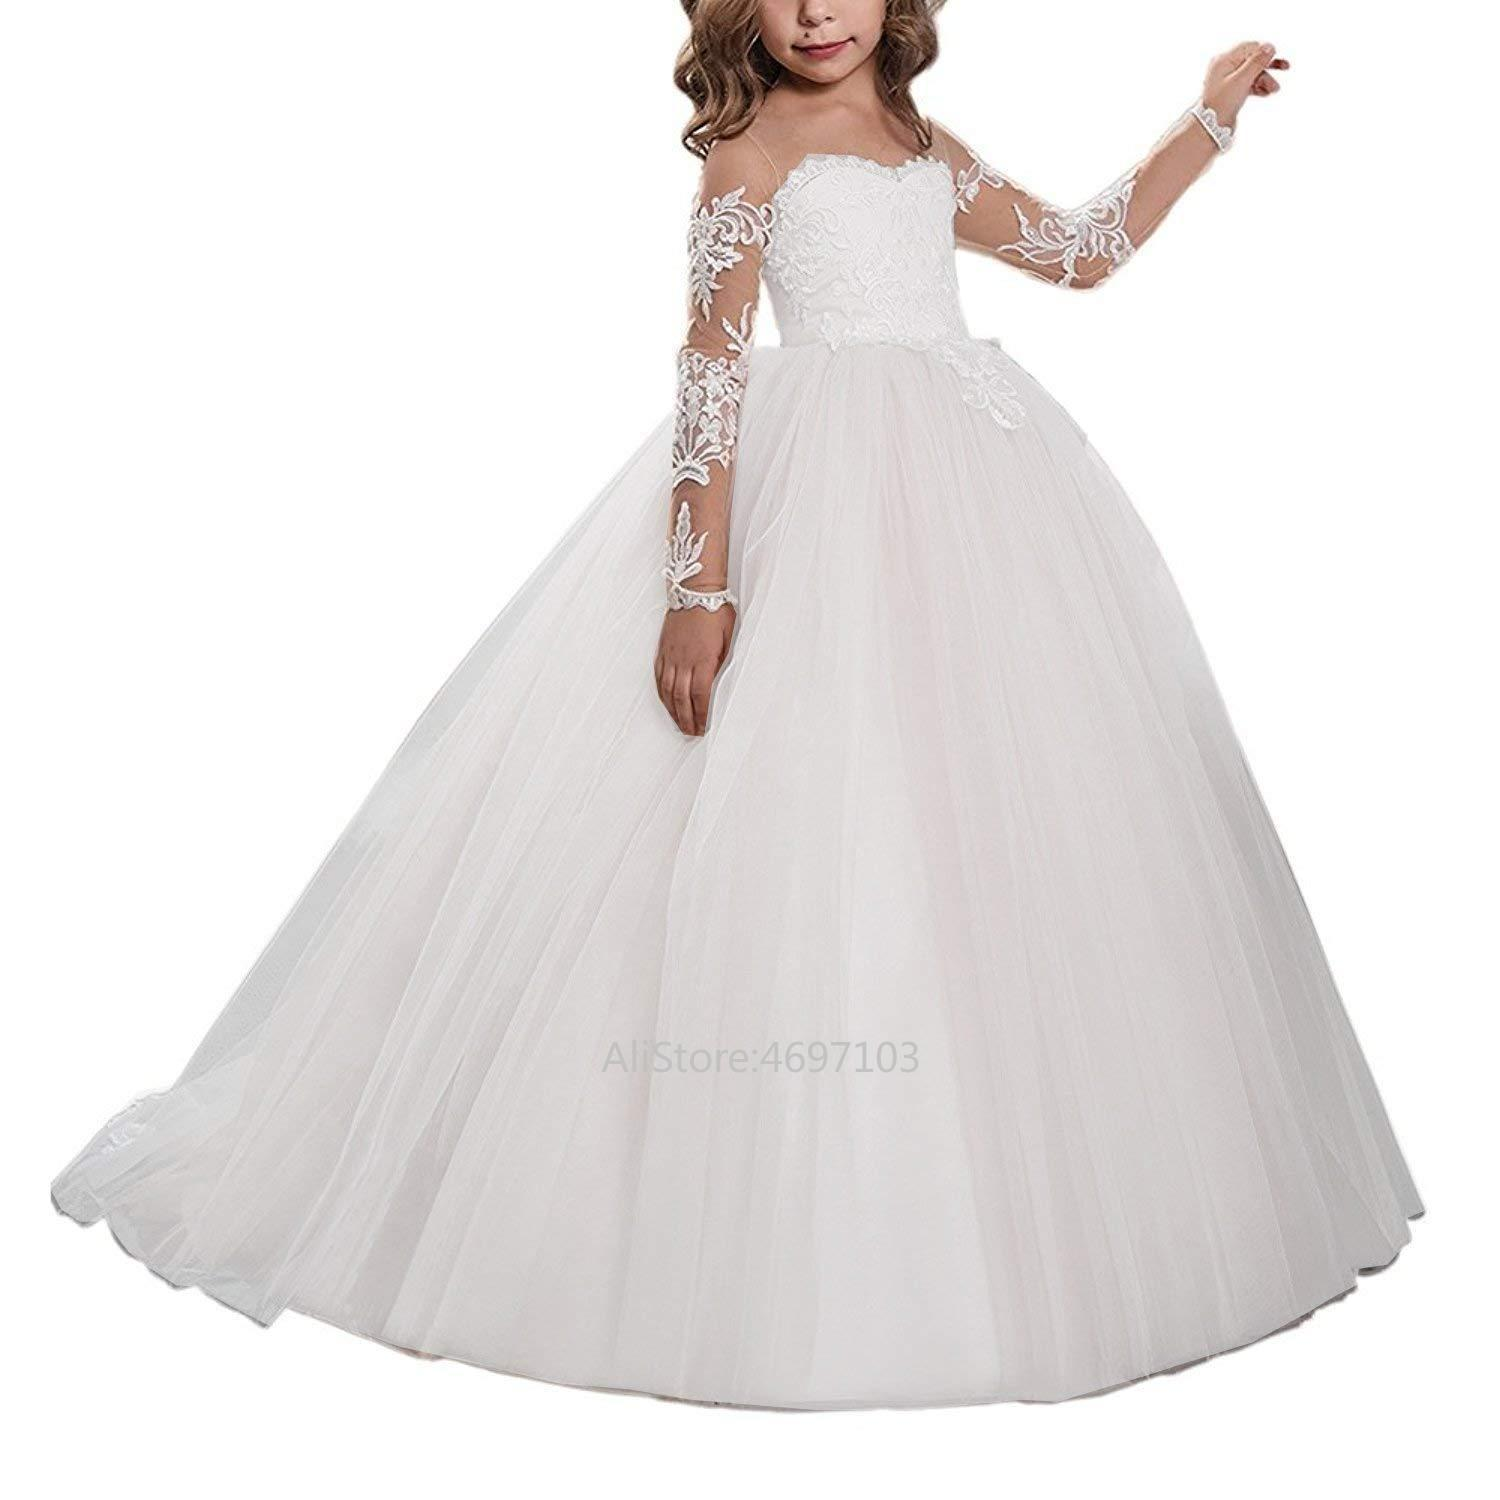 Flower Girls Pageant First Communion Scoop Lace Dress Bridesmaid Dress Girl Clothing Fashion Dress Formal Long Sleeve Princess